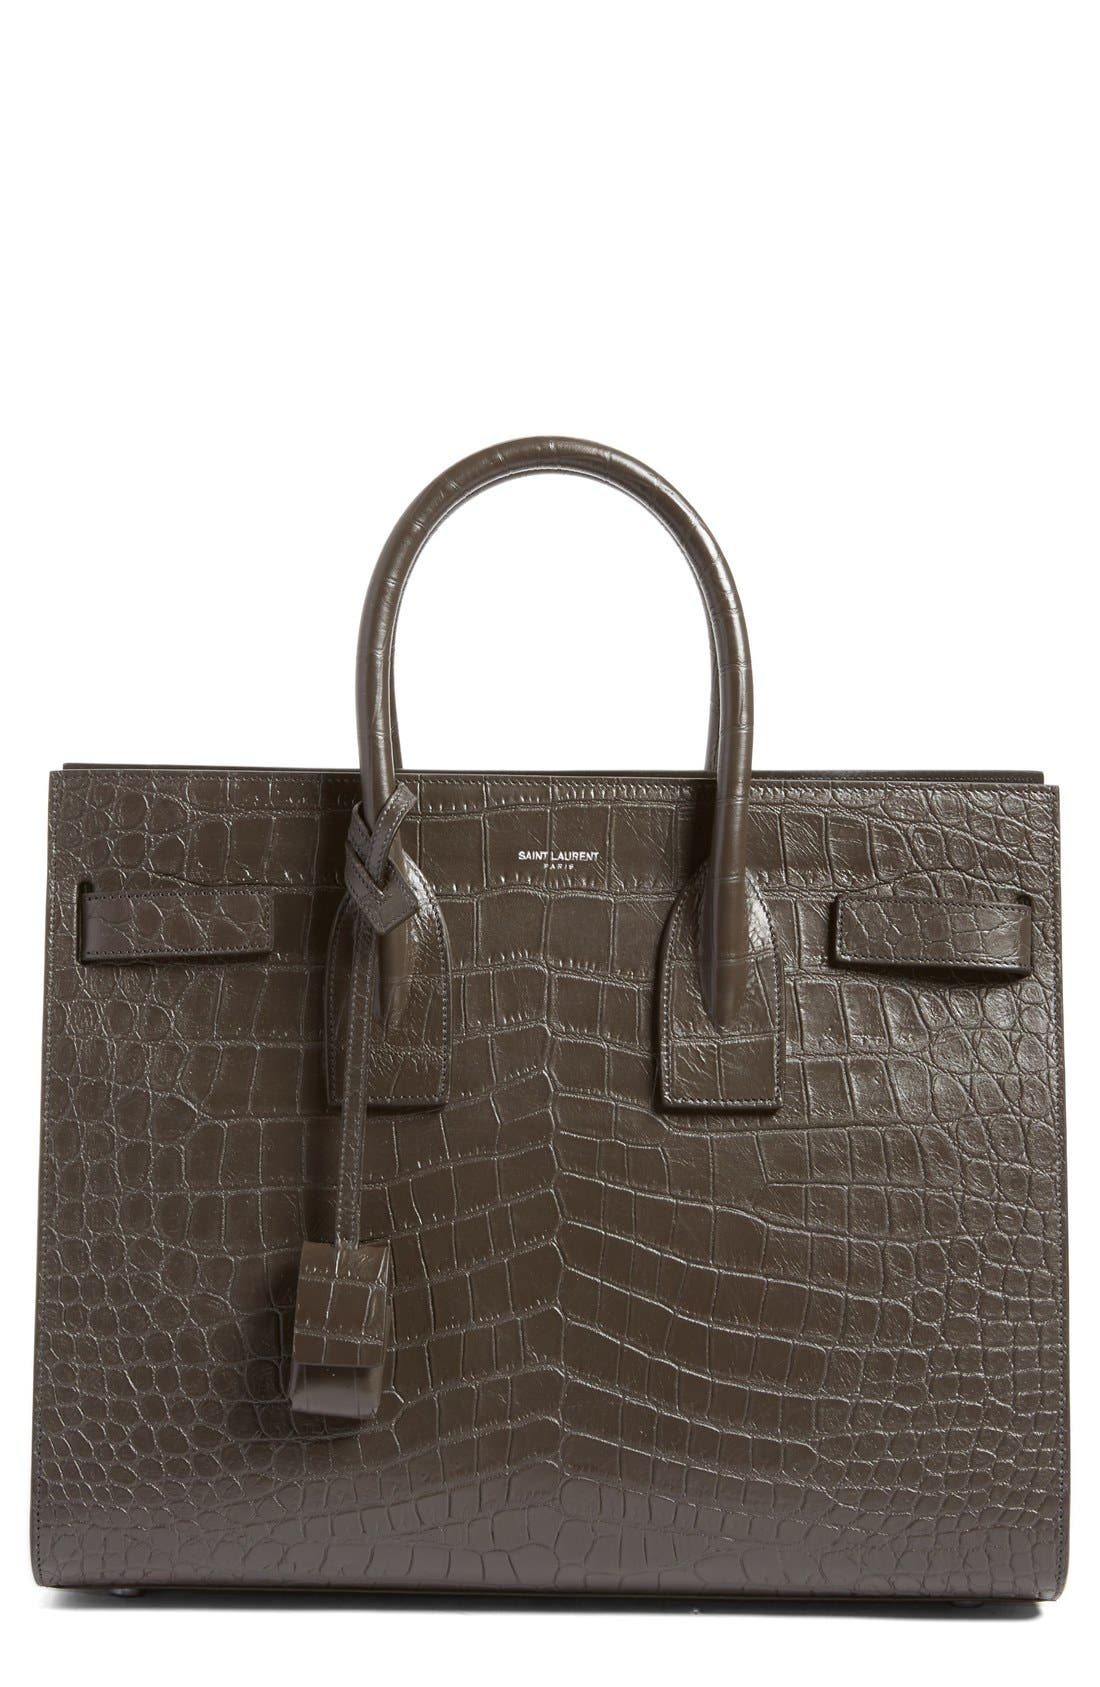 Alternate Image 1 Selected - Saint Laurent 'Small Sac de Jour' Croc Embossed Leather Tote